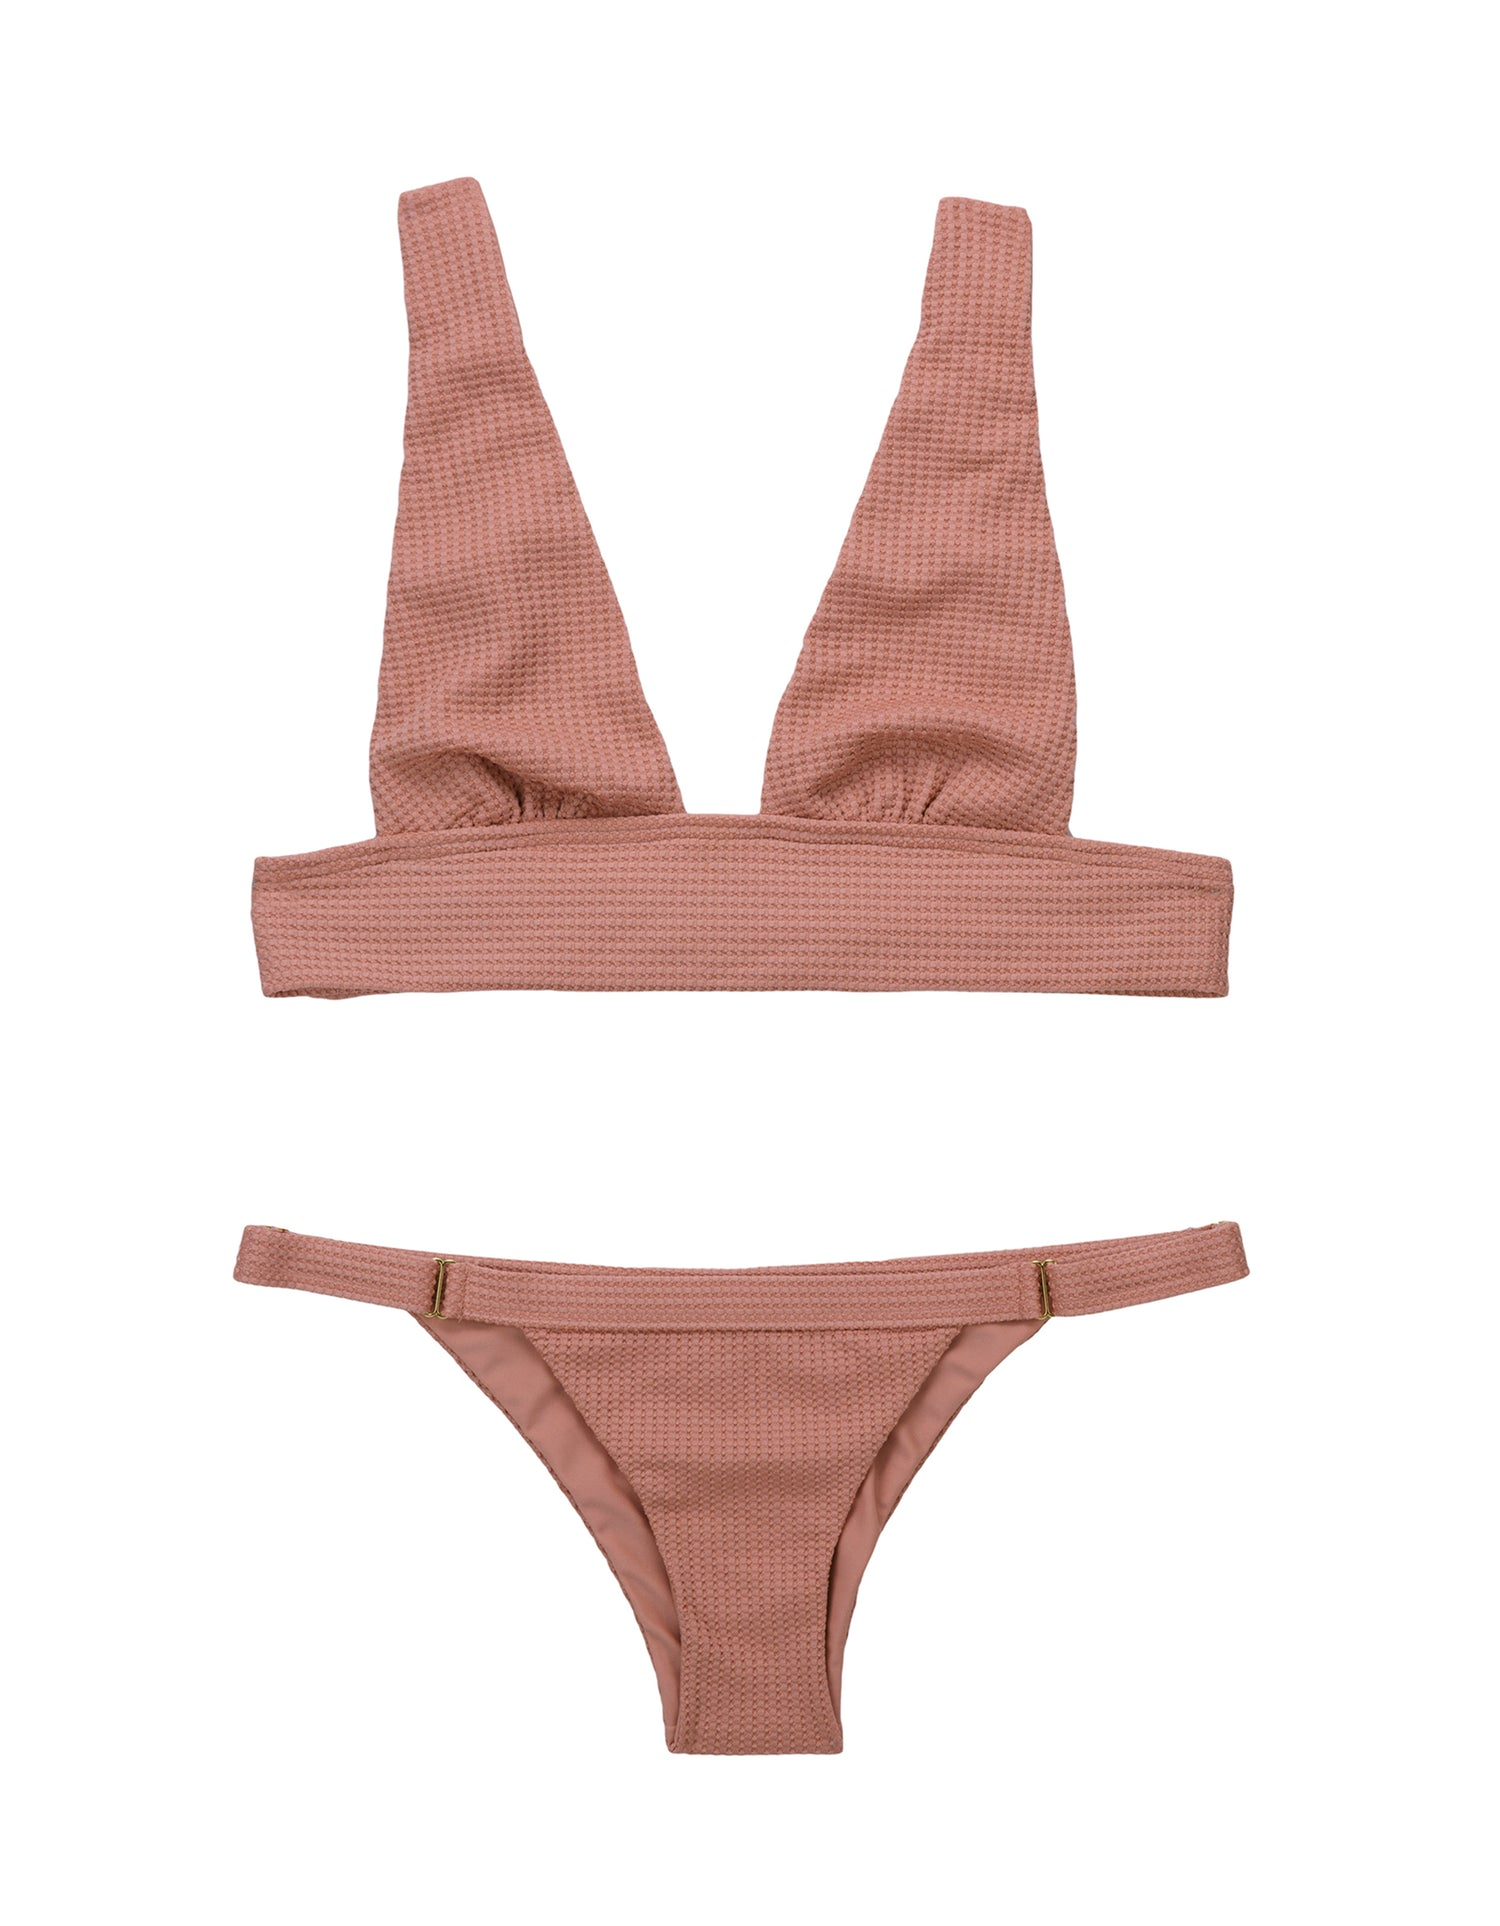 Reese Adjustable Skimpy Bikini Bottom in Whiskey Rose Texture - product view